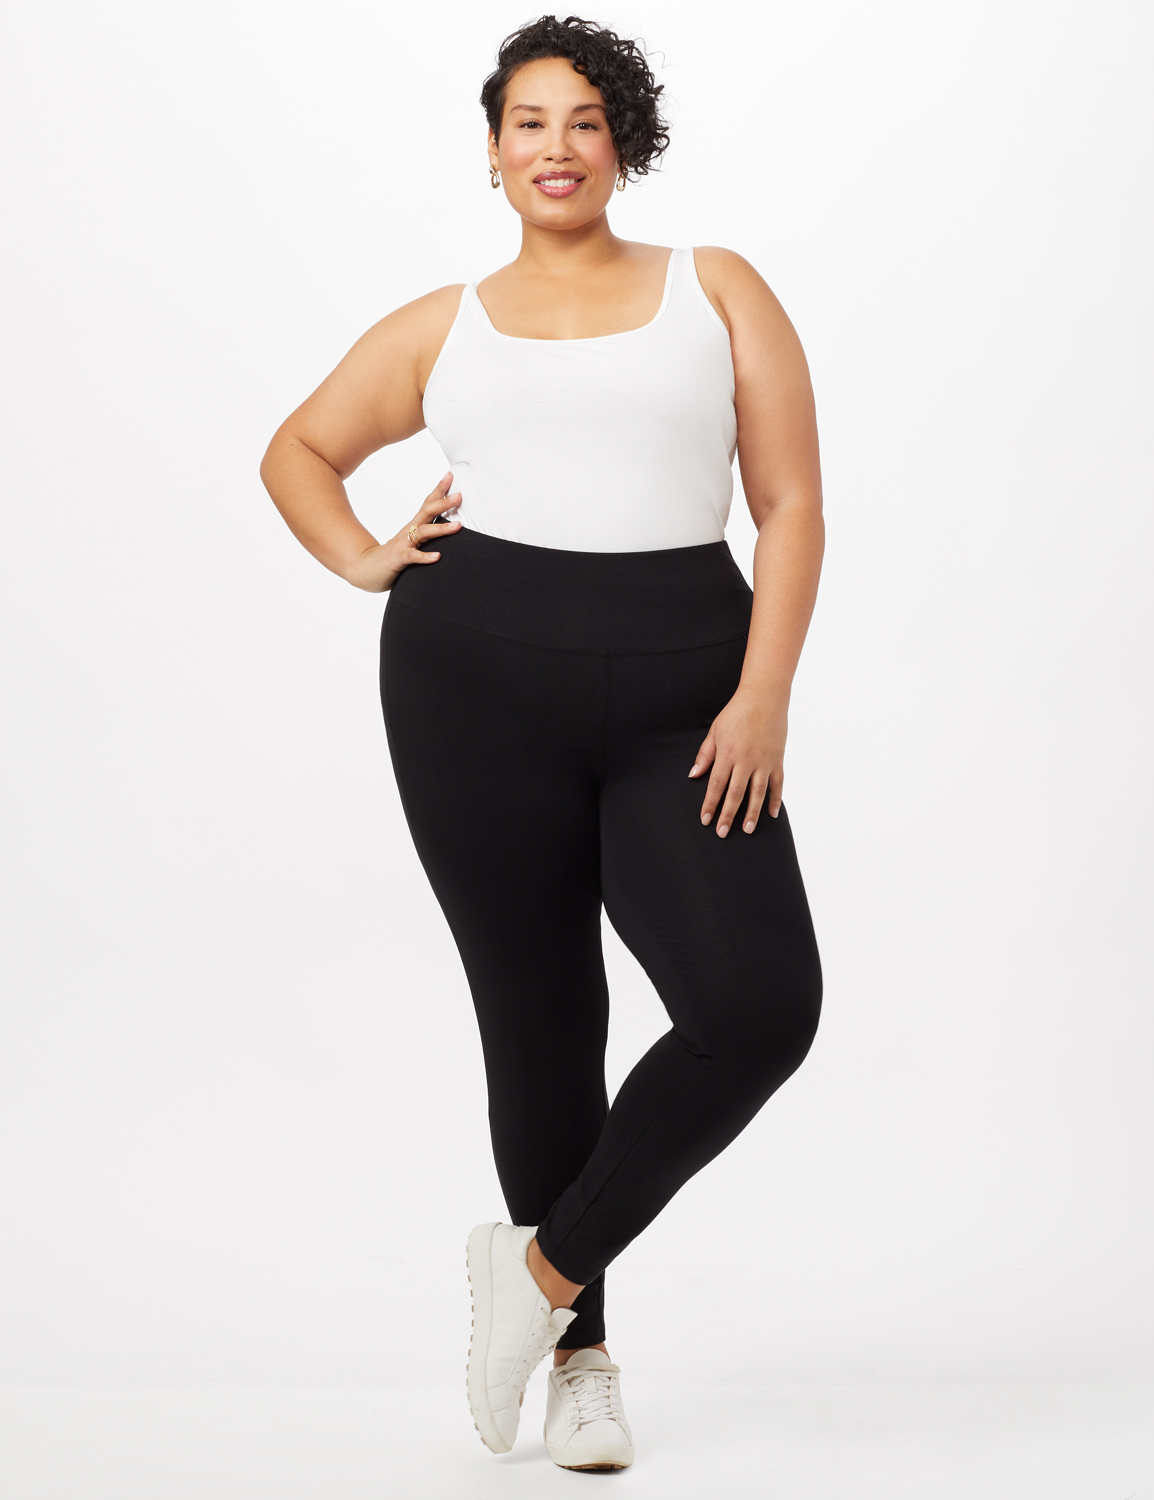 Tummy Control Leggings - Black - Front